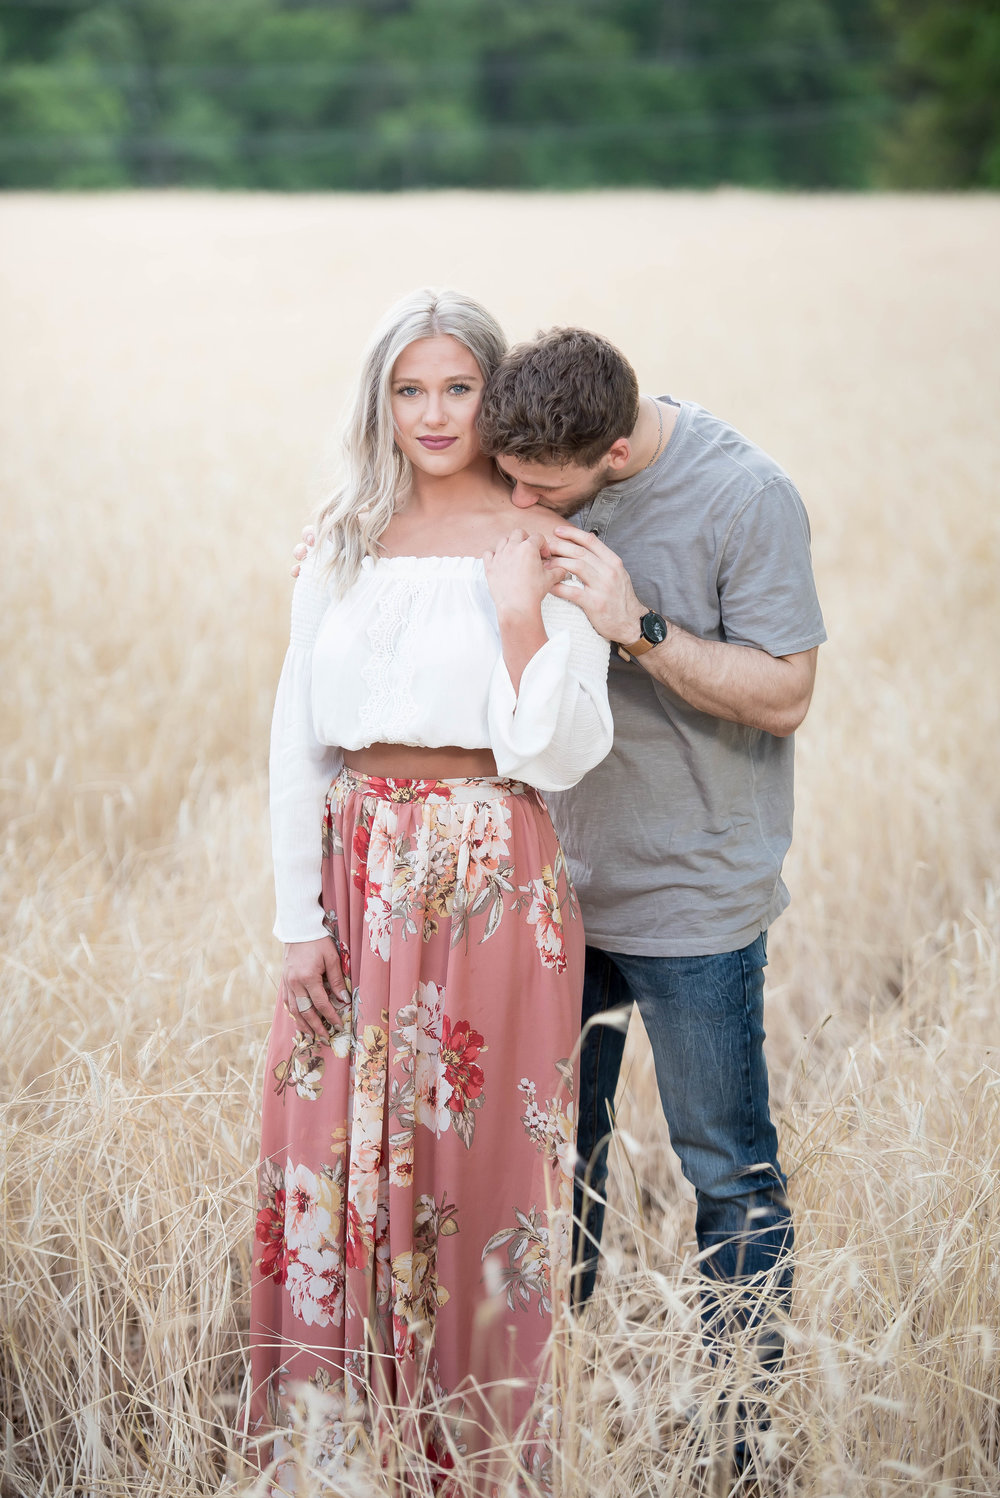 Couple Session - Fitness Couples - Tall Grass Field - Engagement Portrait Ideas - Engagement Session Ideas - Couple Session Ideas - Spring Picture Ideas-15.jpg